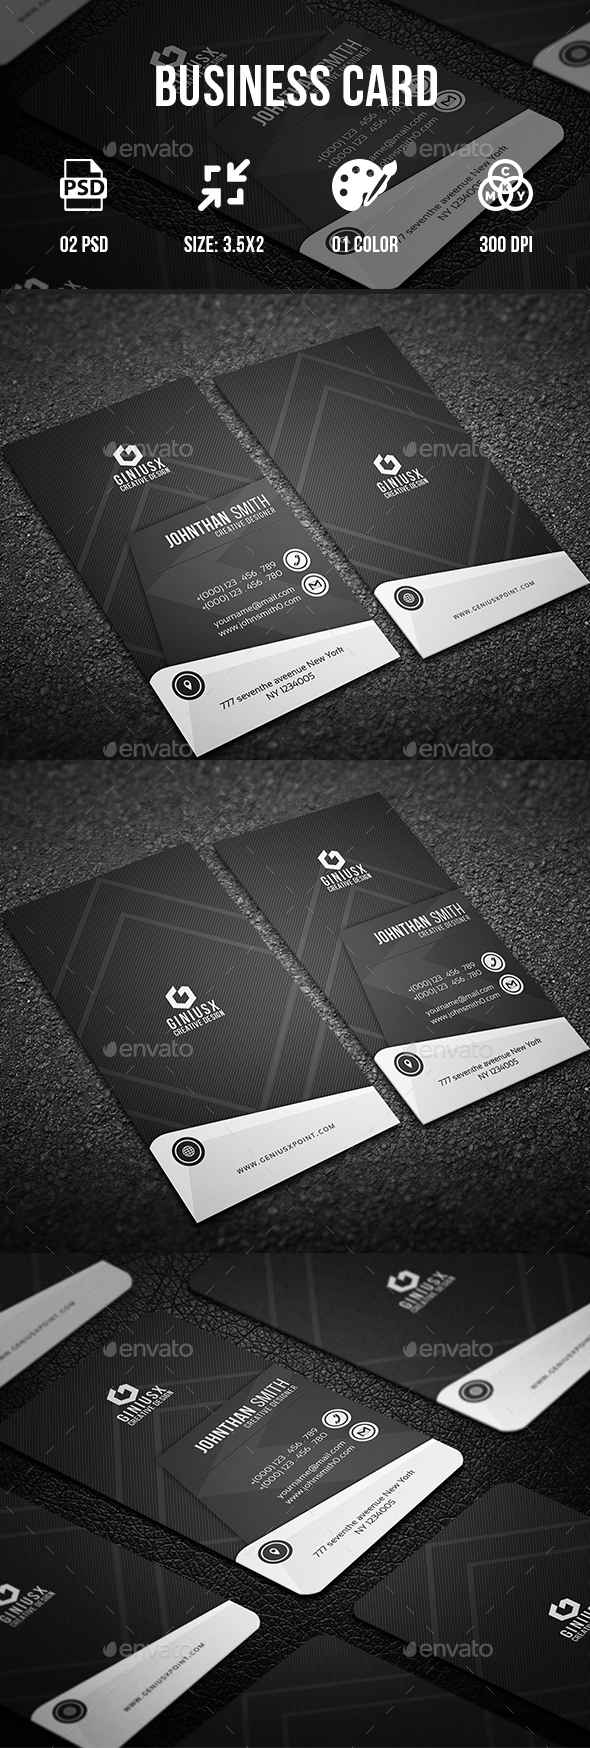 Business Card II - Business Cards Print Templates